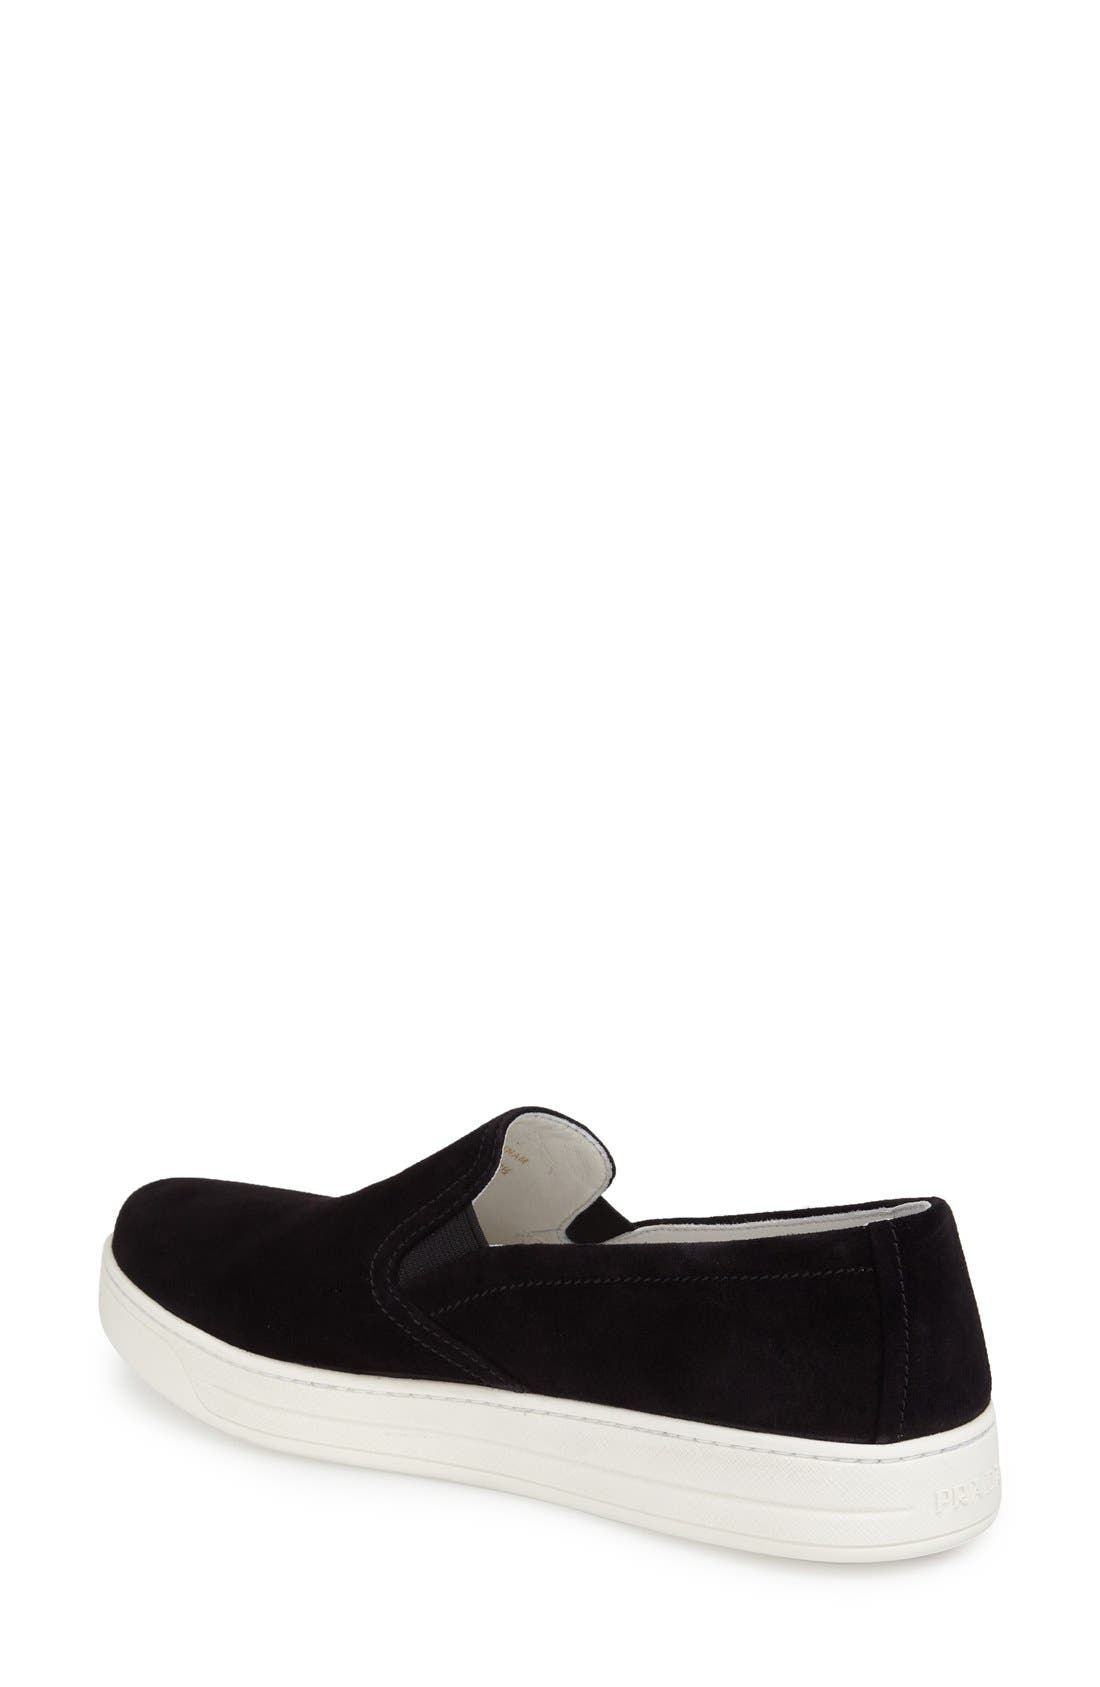 Slip-On Sneaker,                             Alternate thumbnail 66, color,